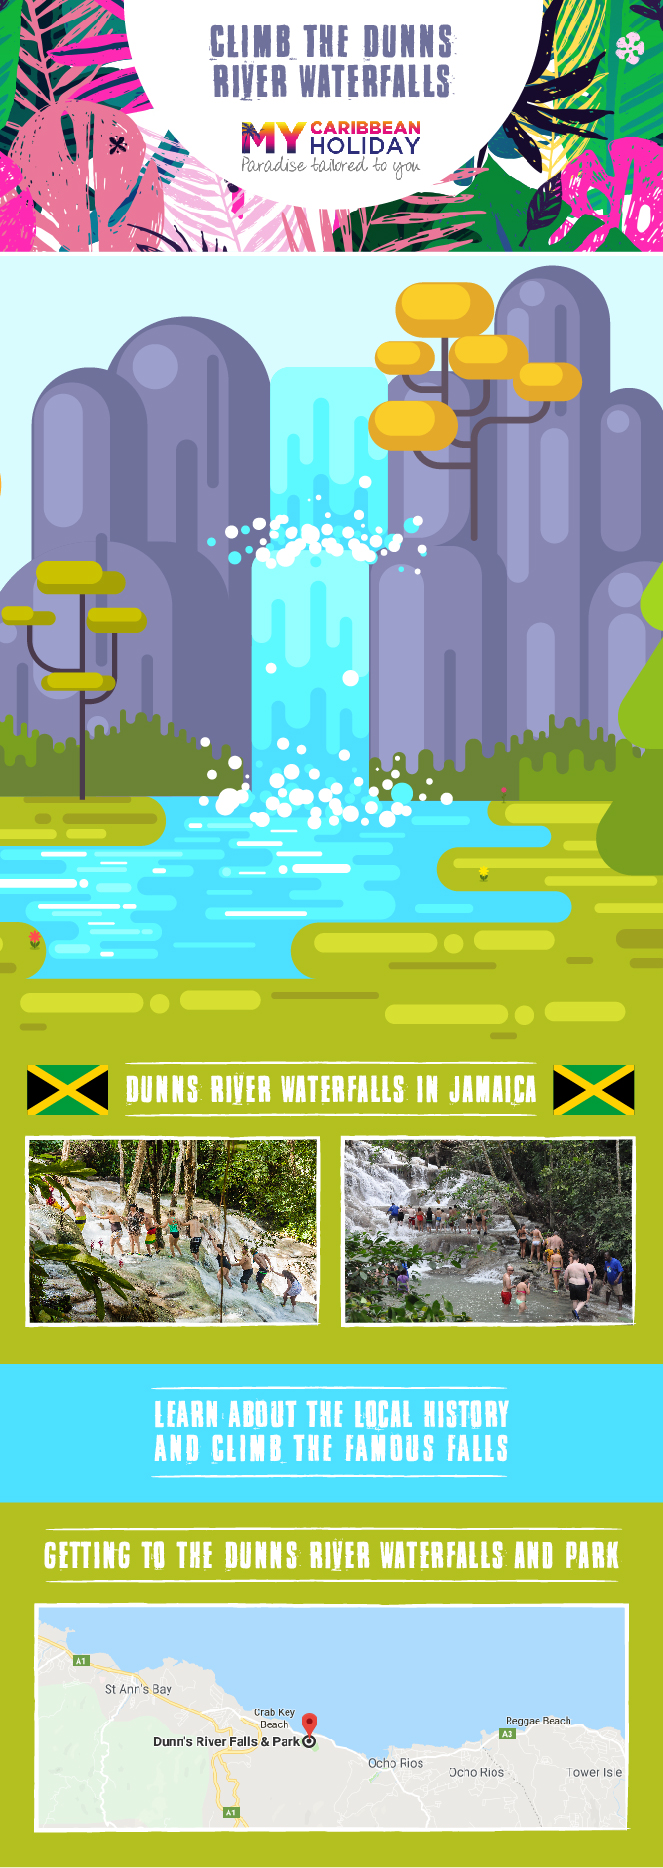 Climb the Dunn's River Waterfalls in Jamaica